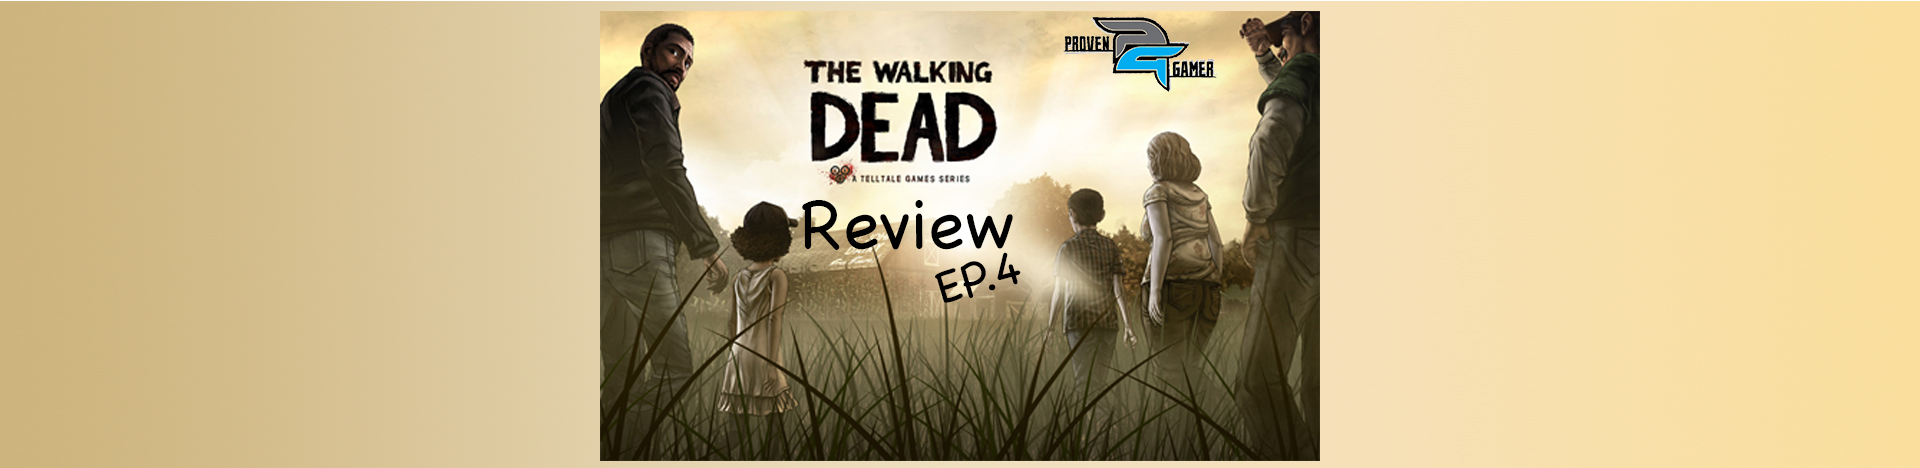 The Walking Dead Episode 4 Review